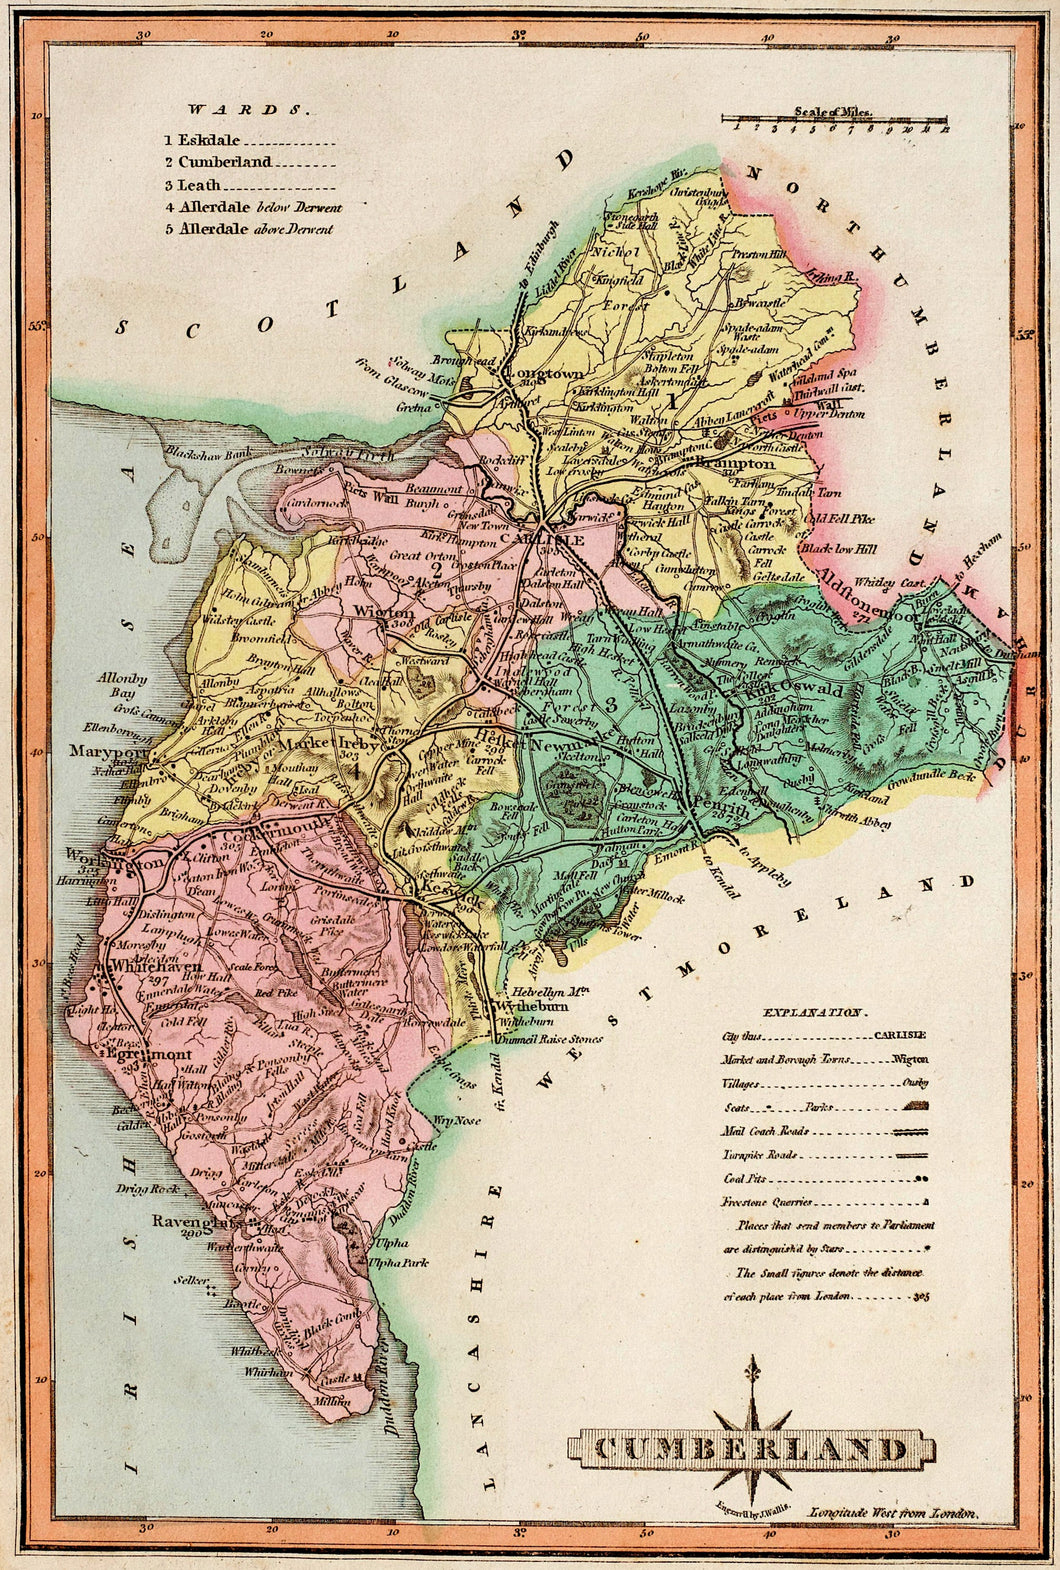 Cumberland - Antique Map by J Wallis circa 1814